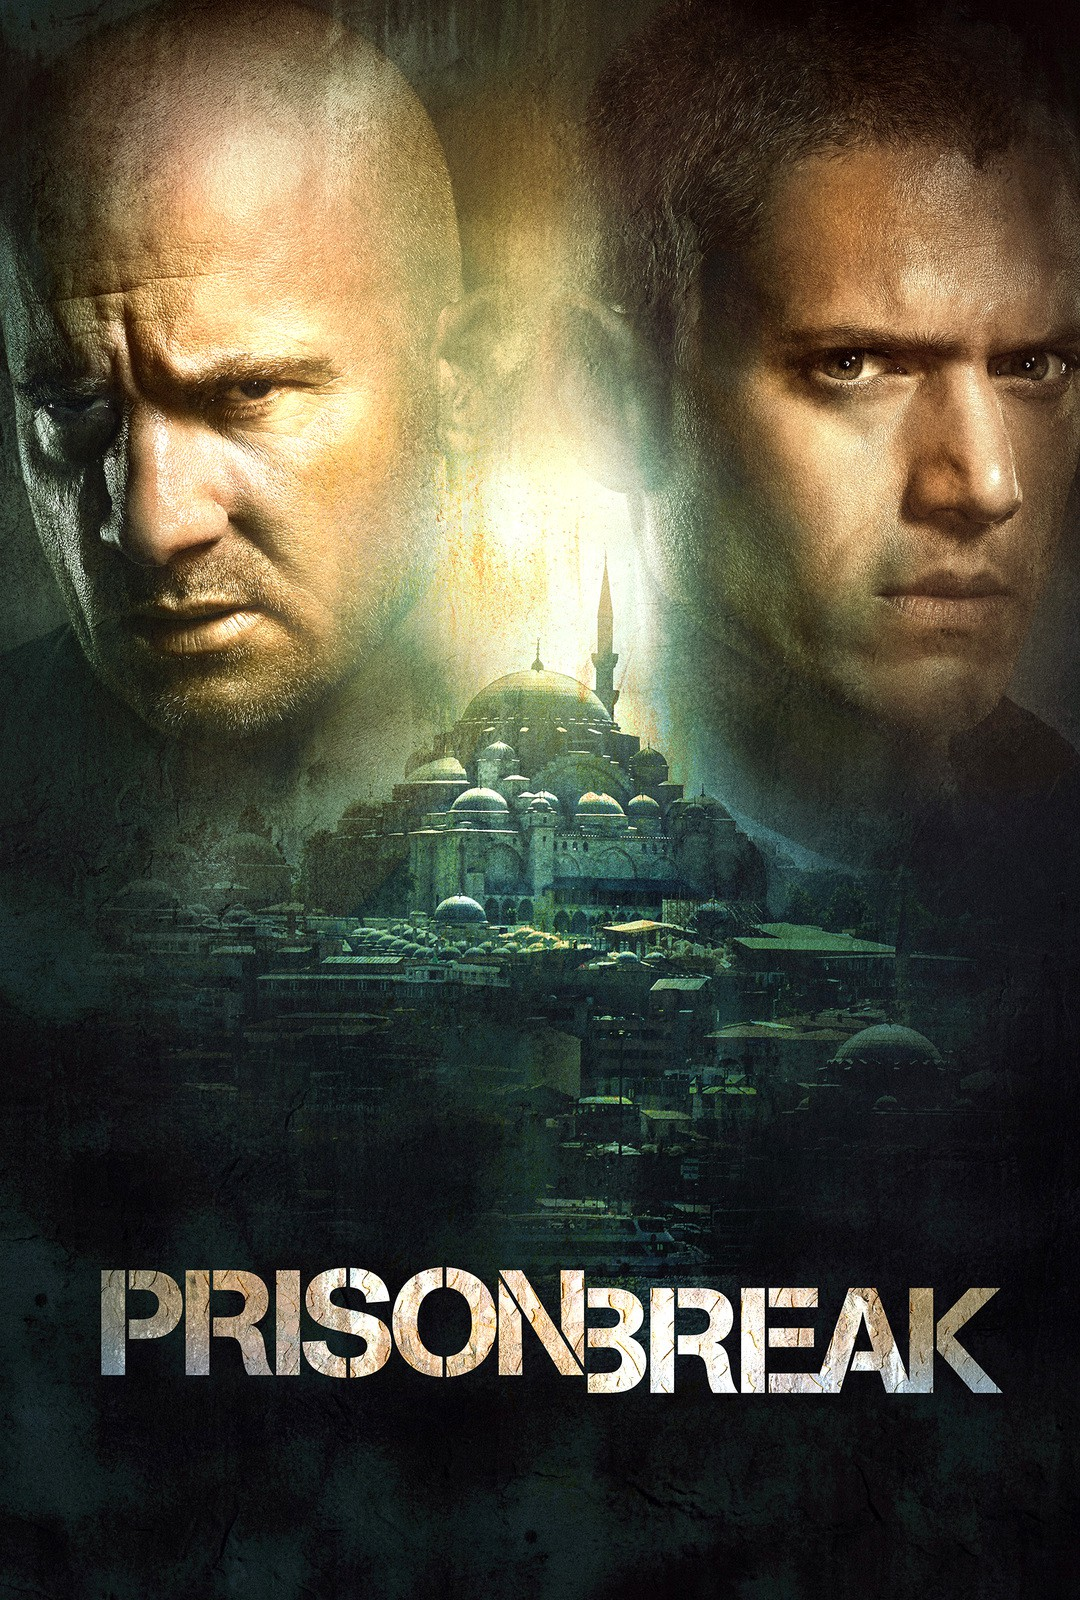 prison break staffel 1 folge 10